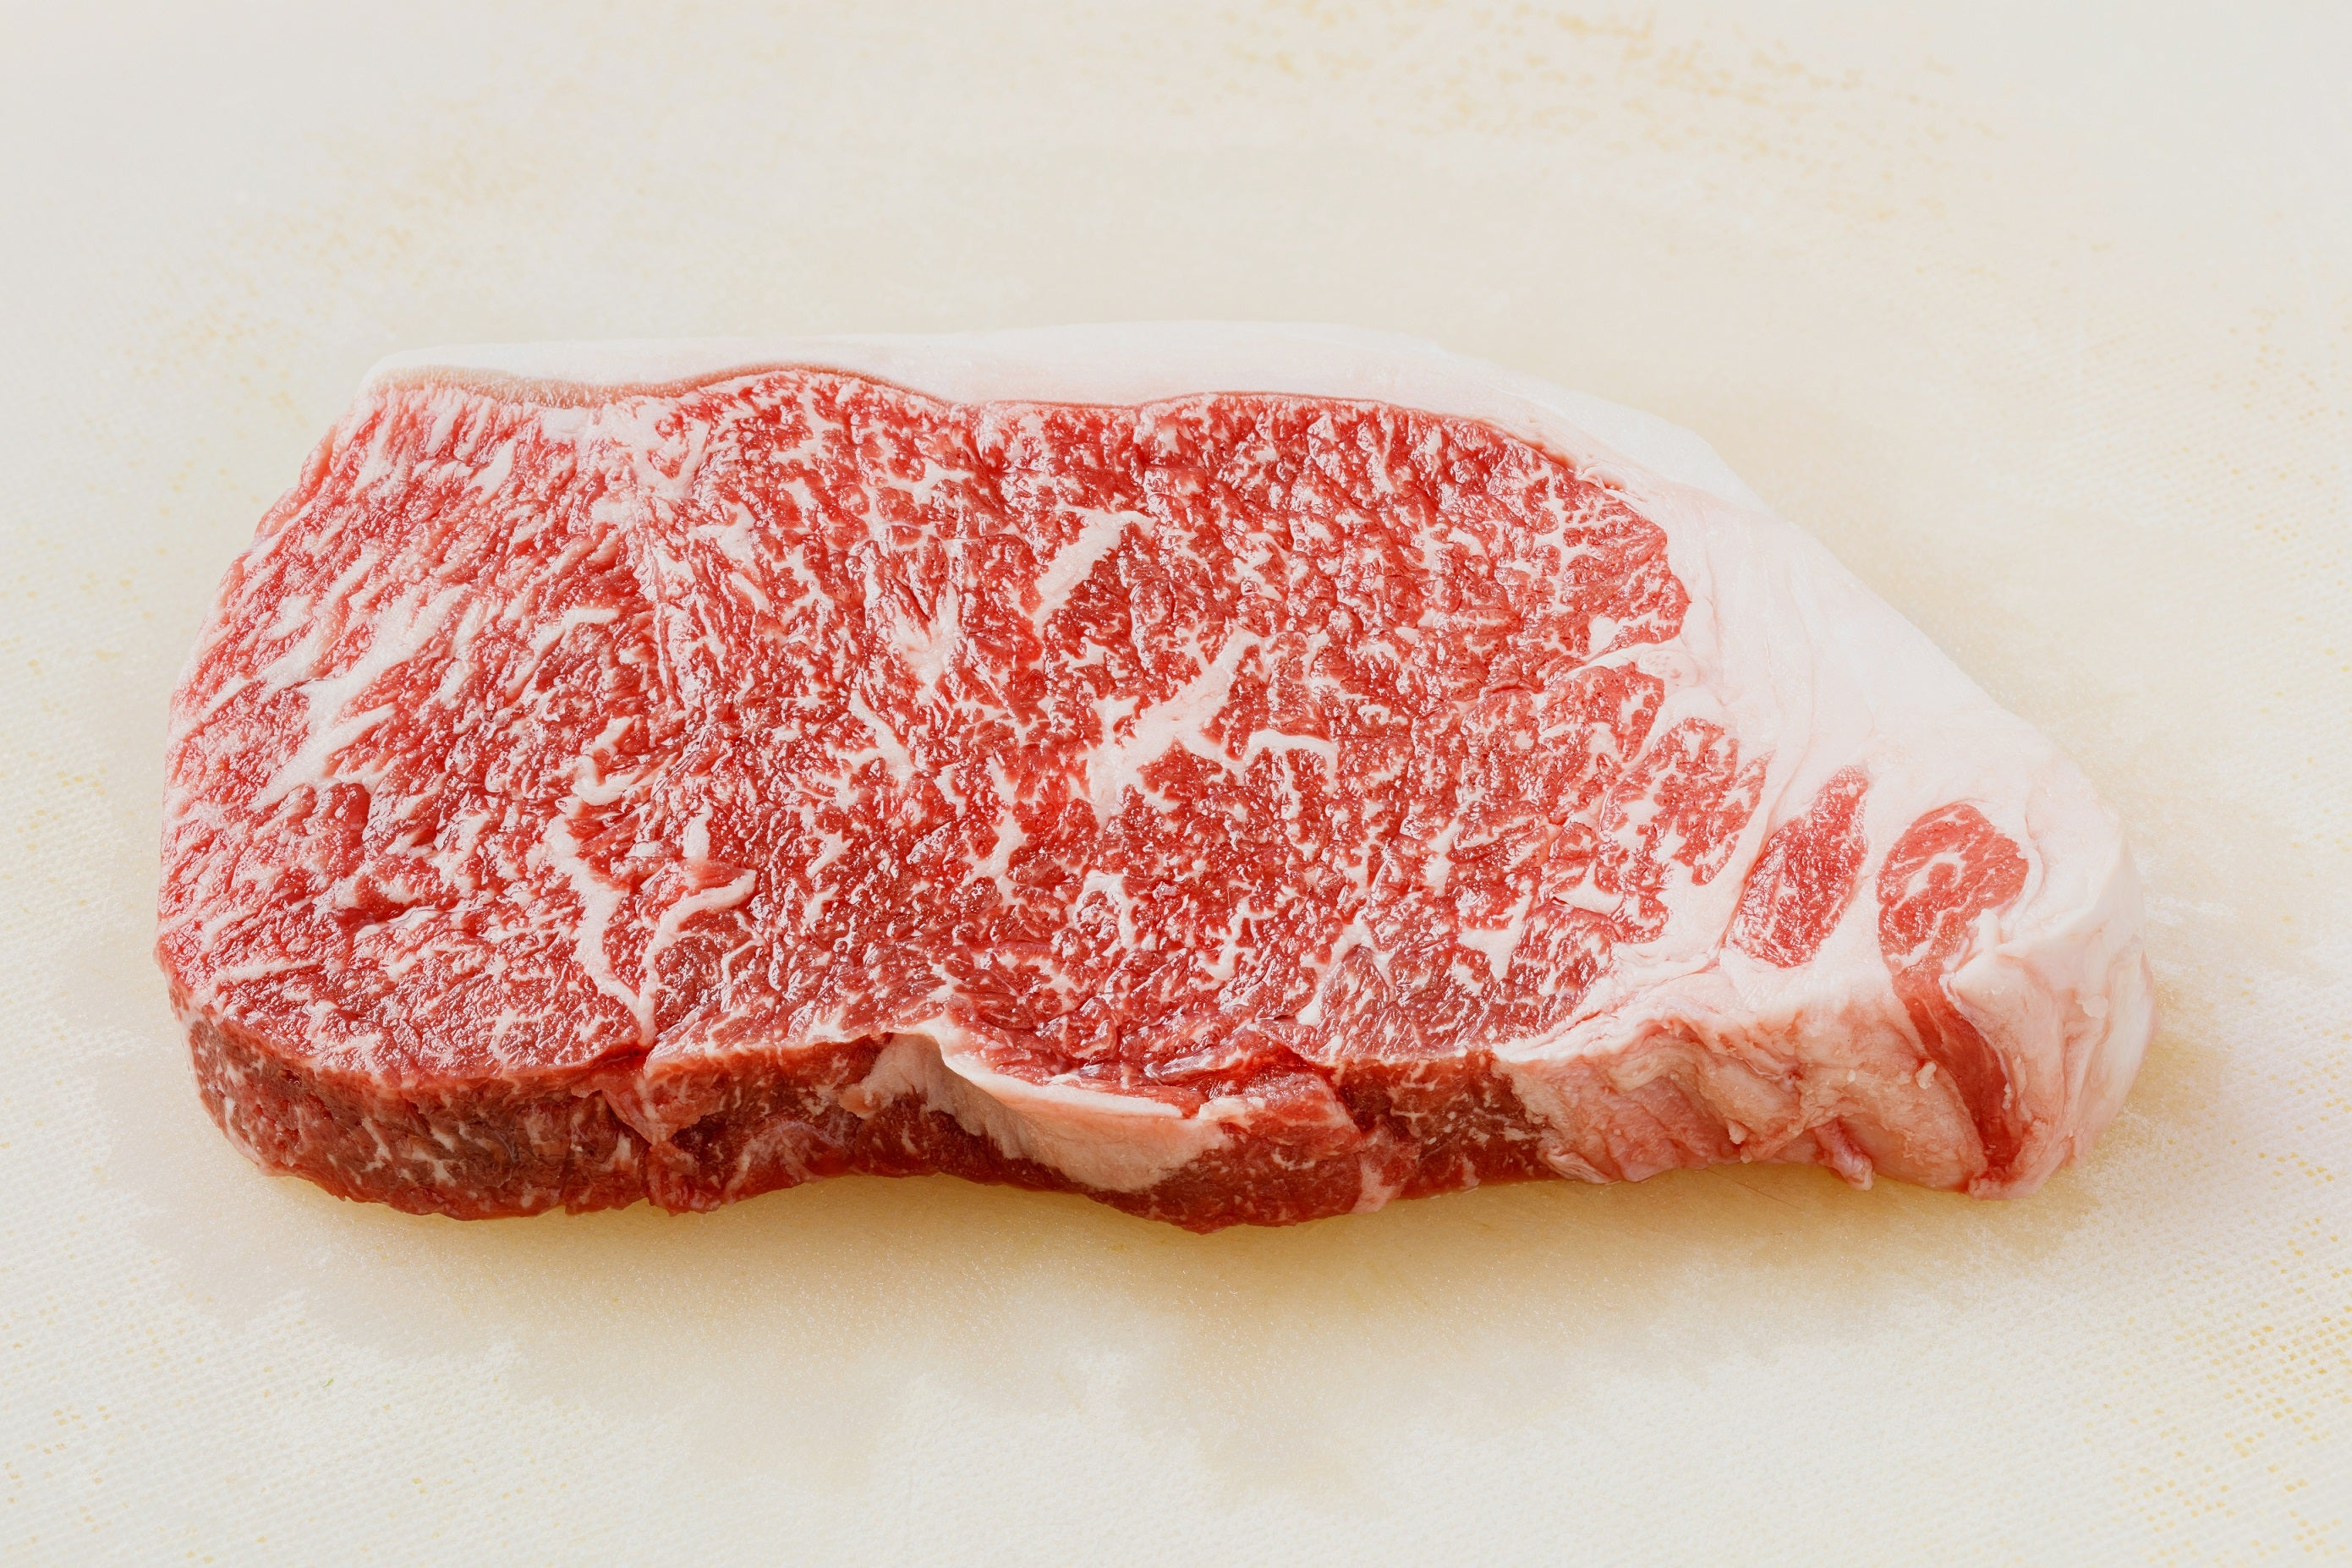 3 x Chilean Wagyu Striploin Steak BMS 8-9 (3 x 150g)